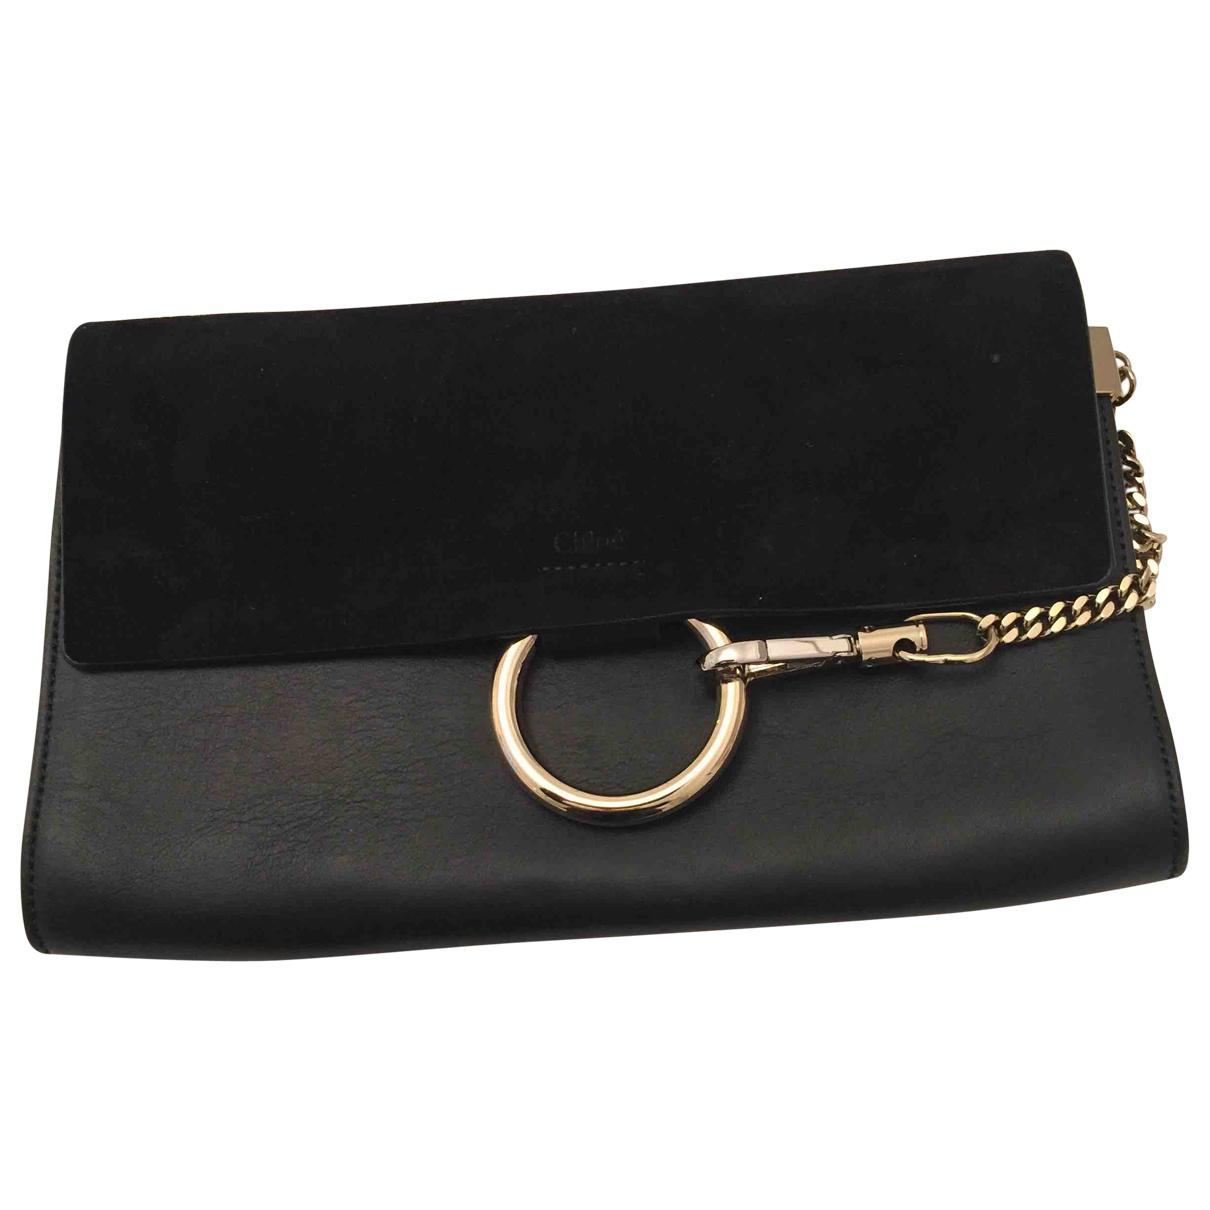 Outlet Discount Sale Leather Statement Clutch - peace of i-navy/gold by VIDA VIDA Discount Inexpensive Free Shipping Discount R479R6e9